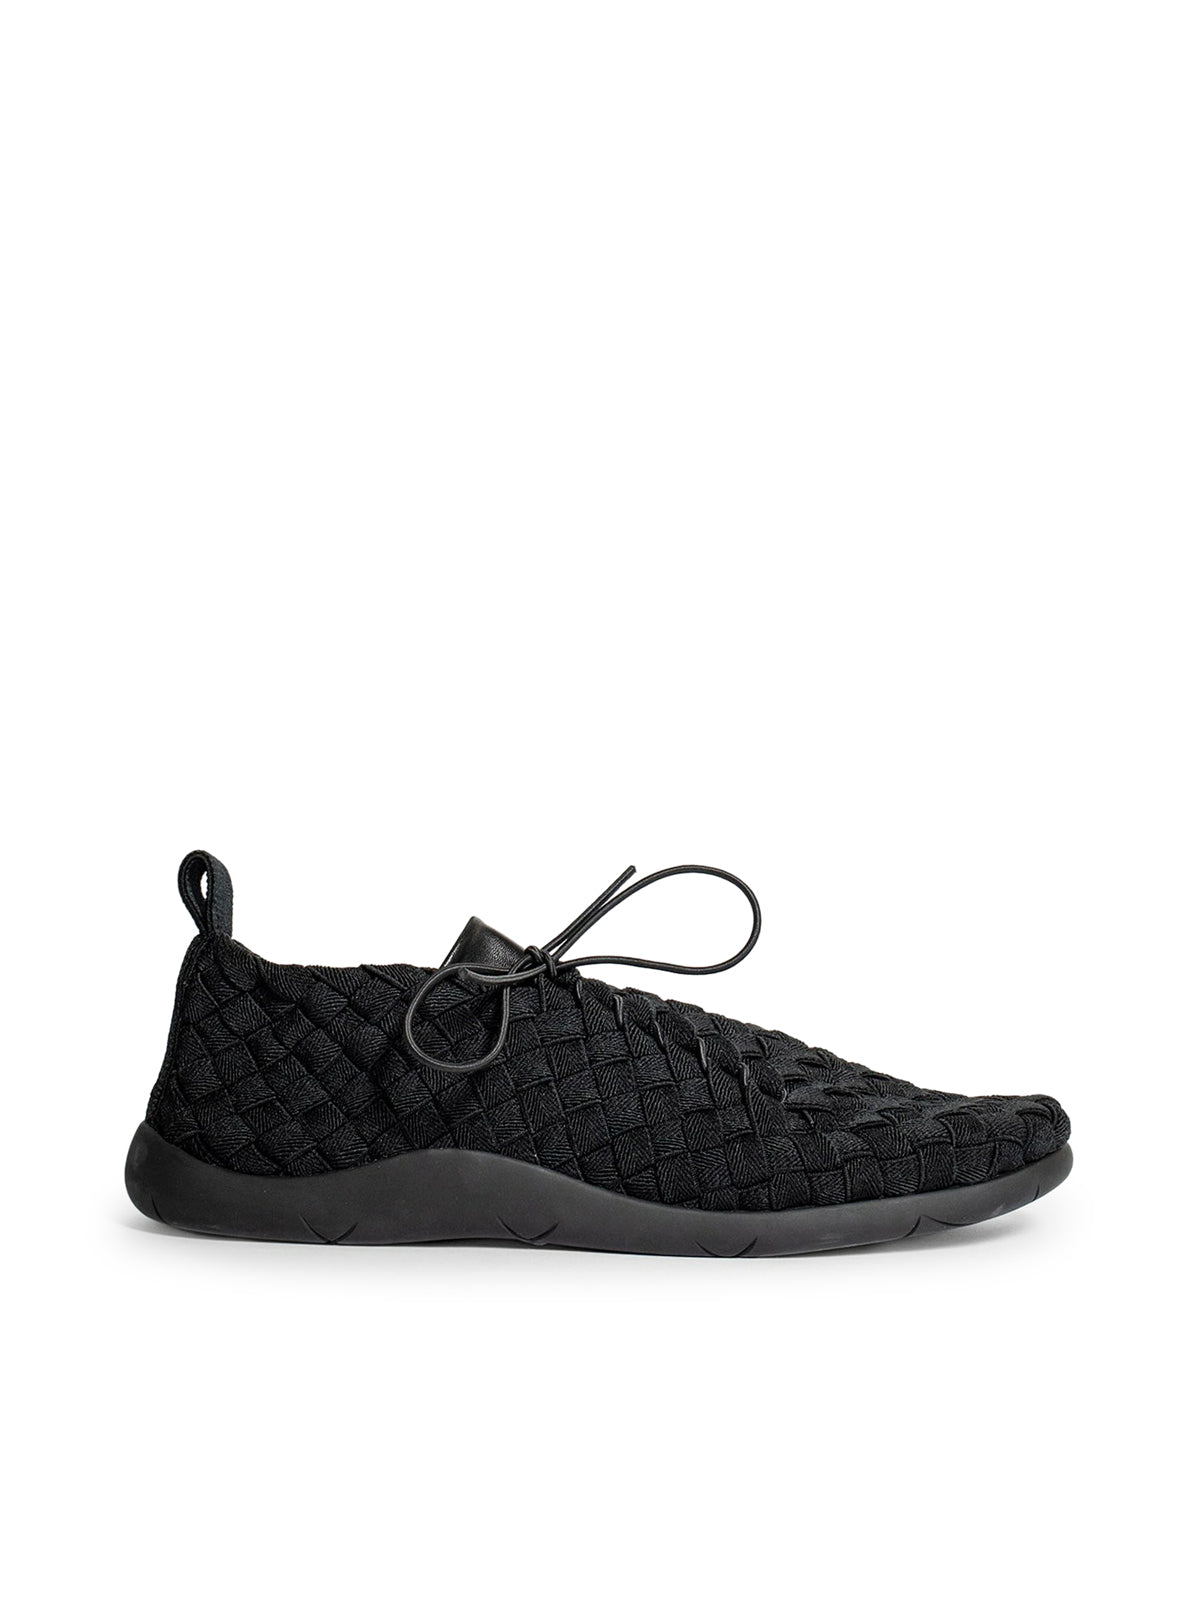 Bottega Veneta Leathers SNEAKERS IN GROSGRAIN BLACK